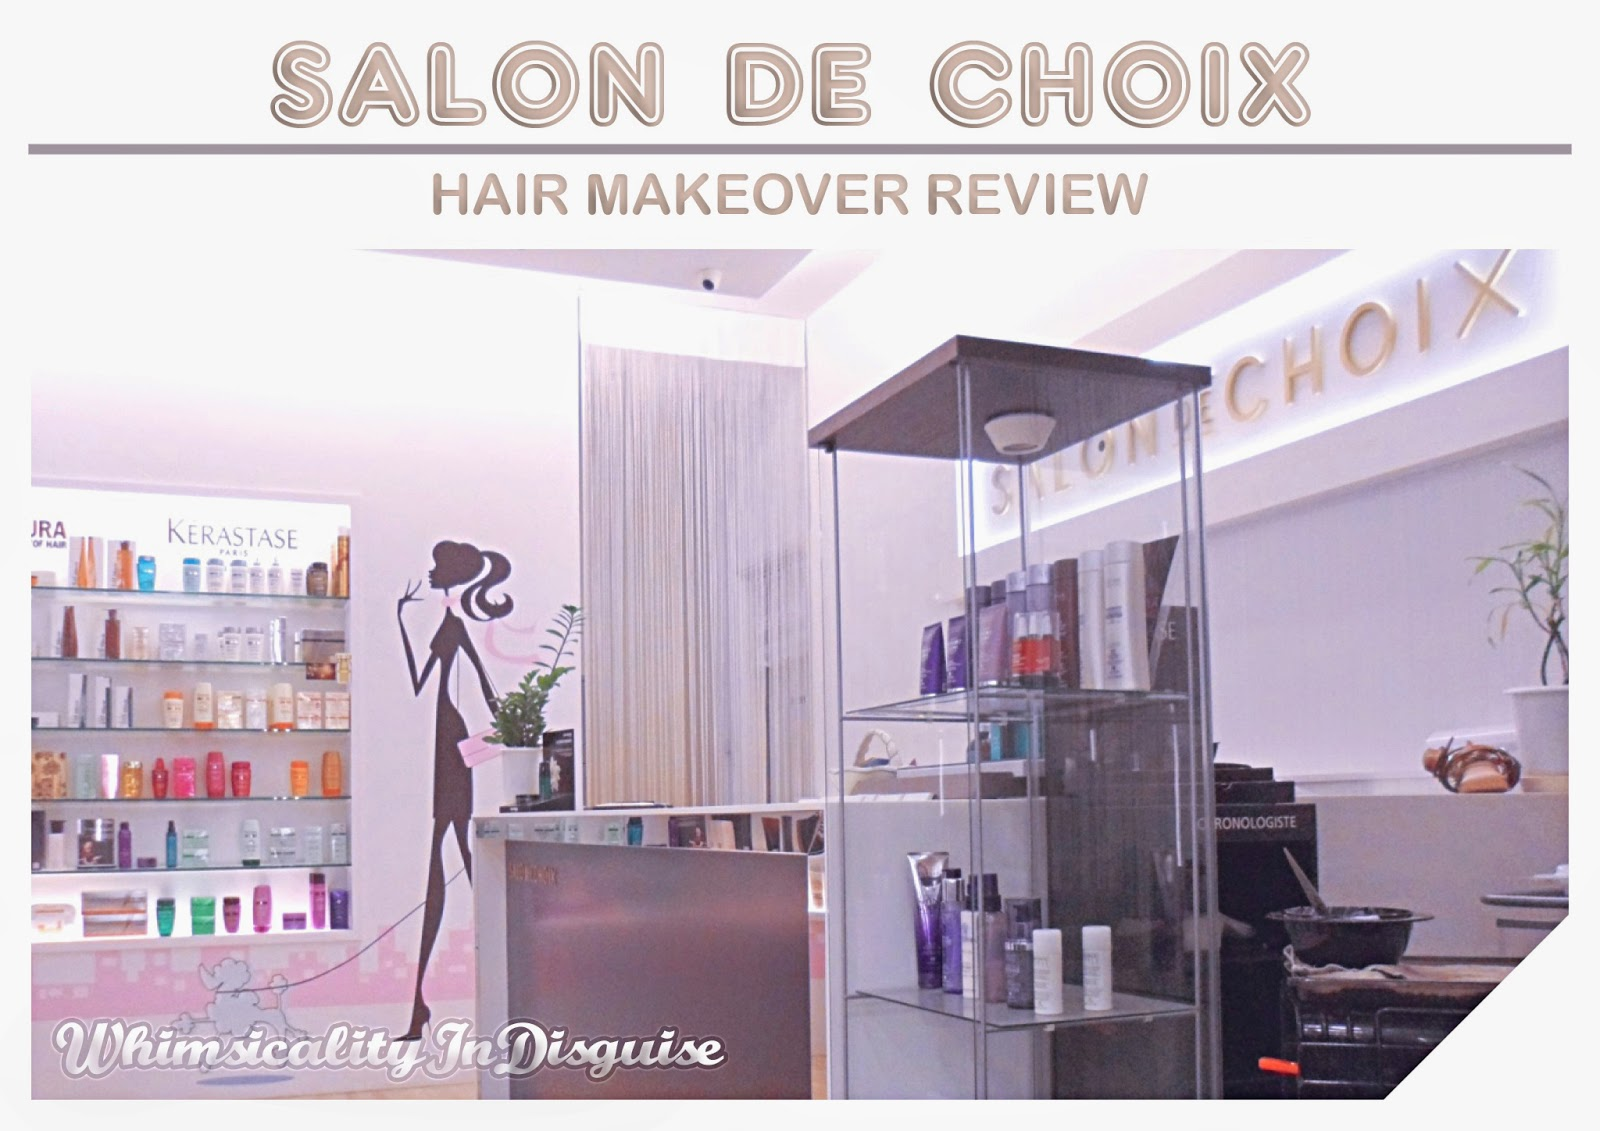 SALON DE CHOIX REVIEW HAIR MAKEOVER